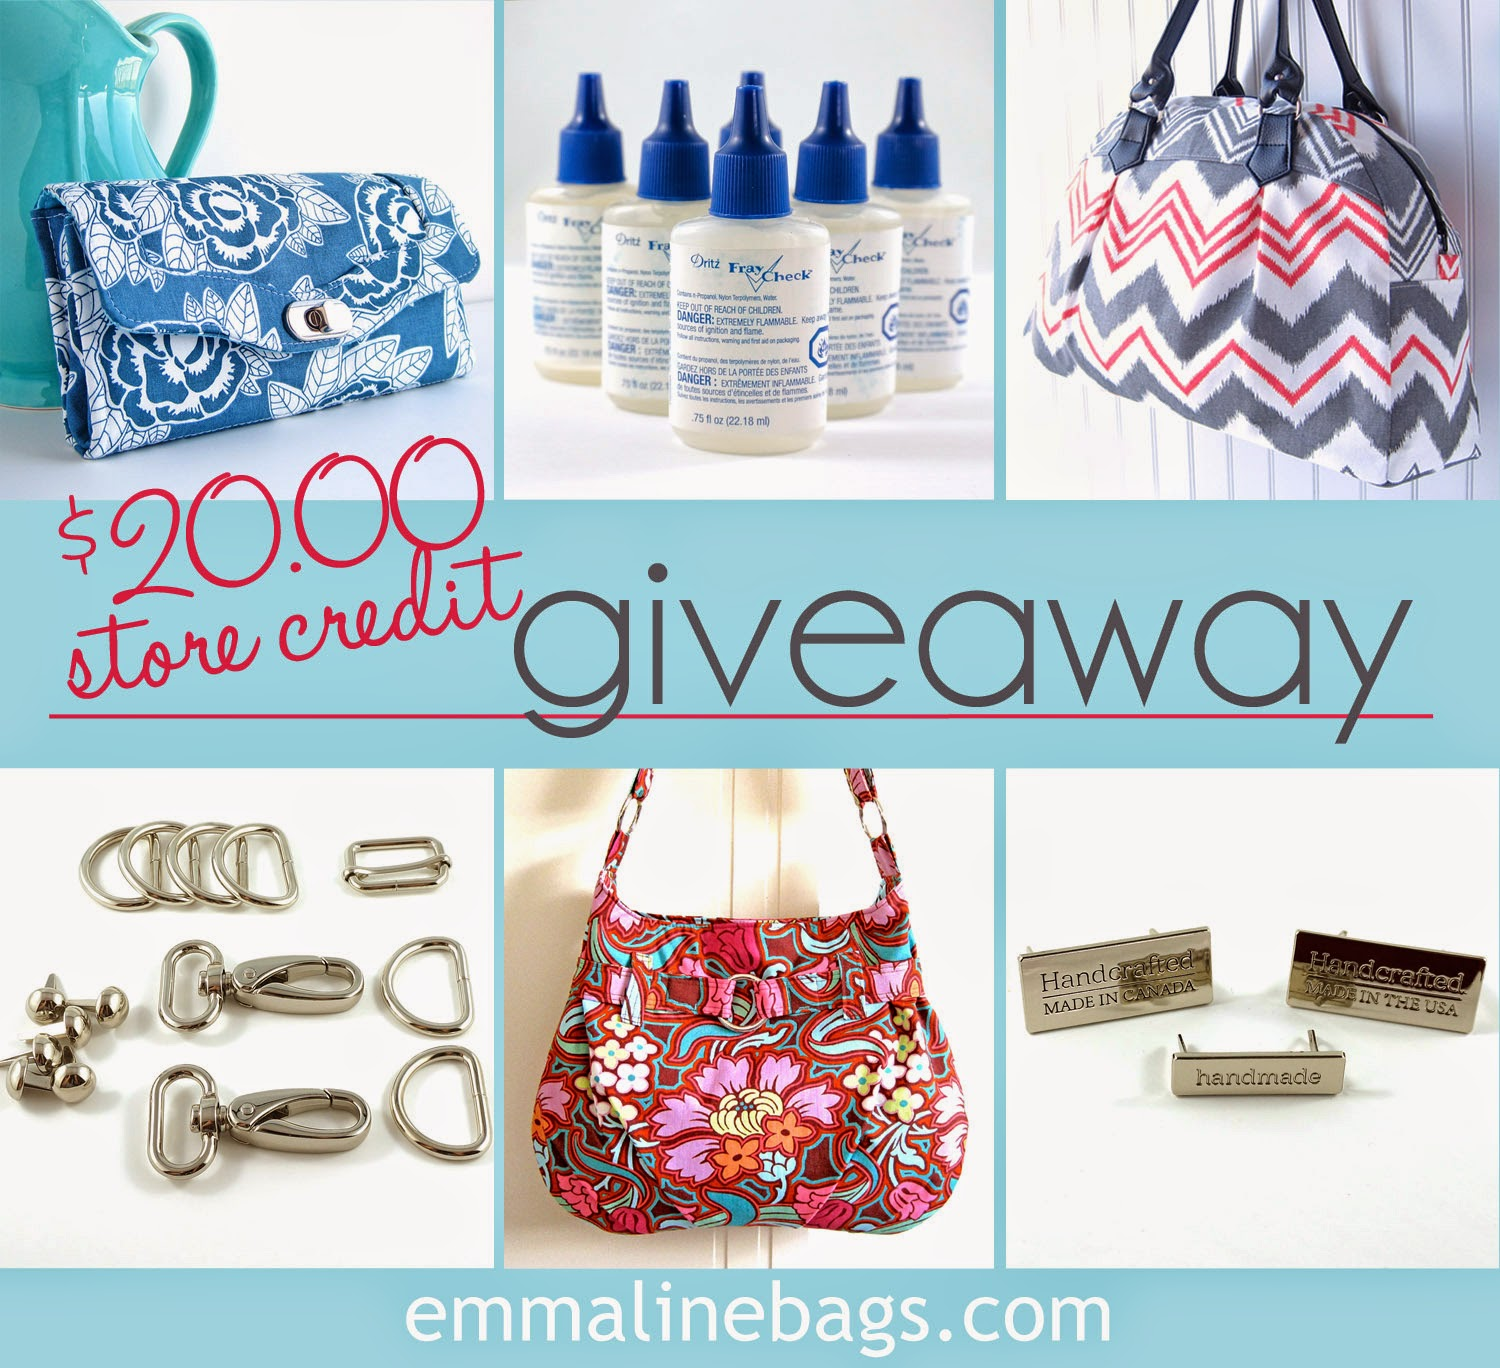 20$ store credit prize at emmalinebags.com. Enter by May 16, 2014